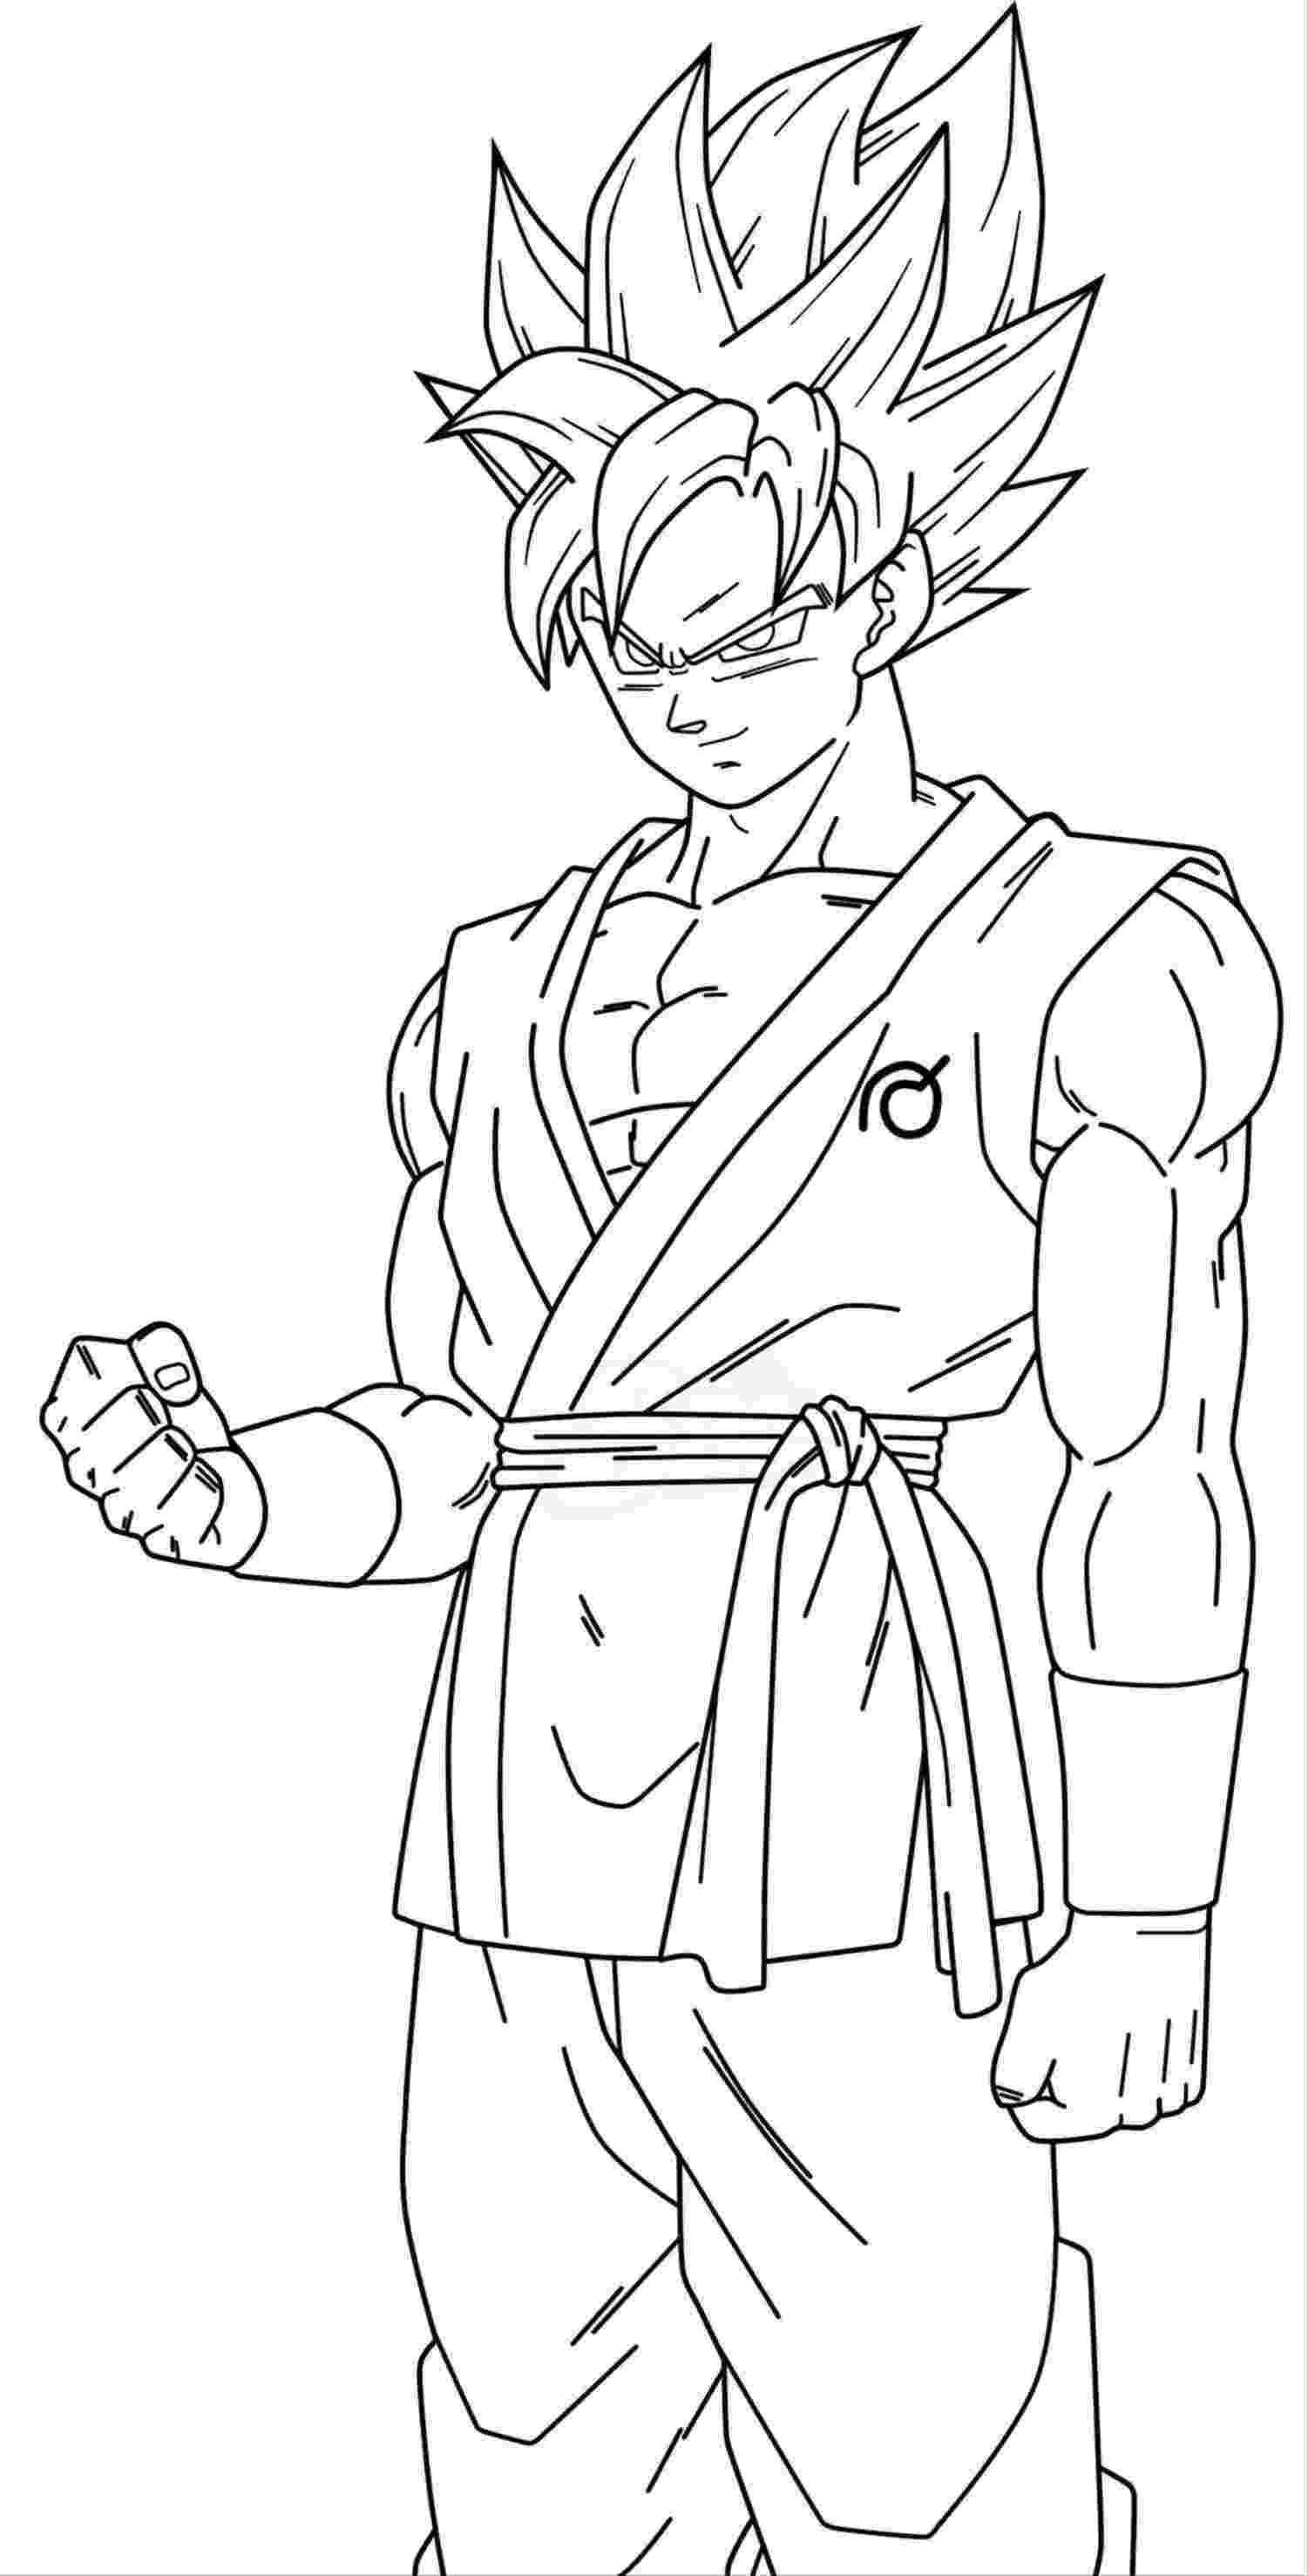 goku super saiyan coloring pages promising goku super saiyan 1 coloring pages of best pages saiyan goku super coloring